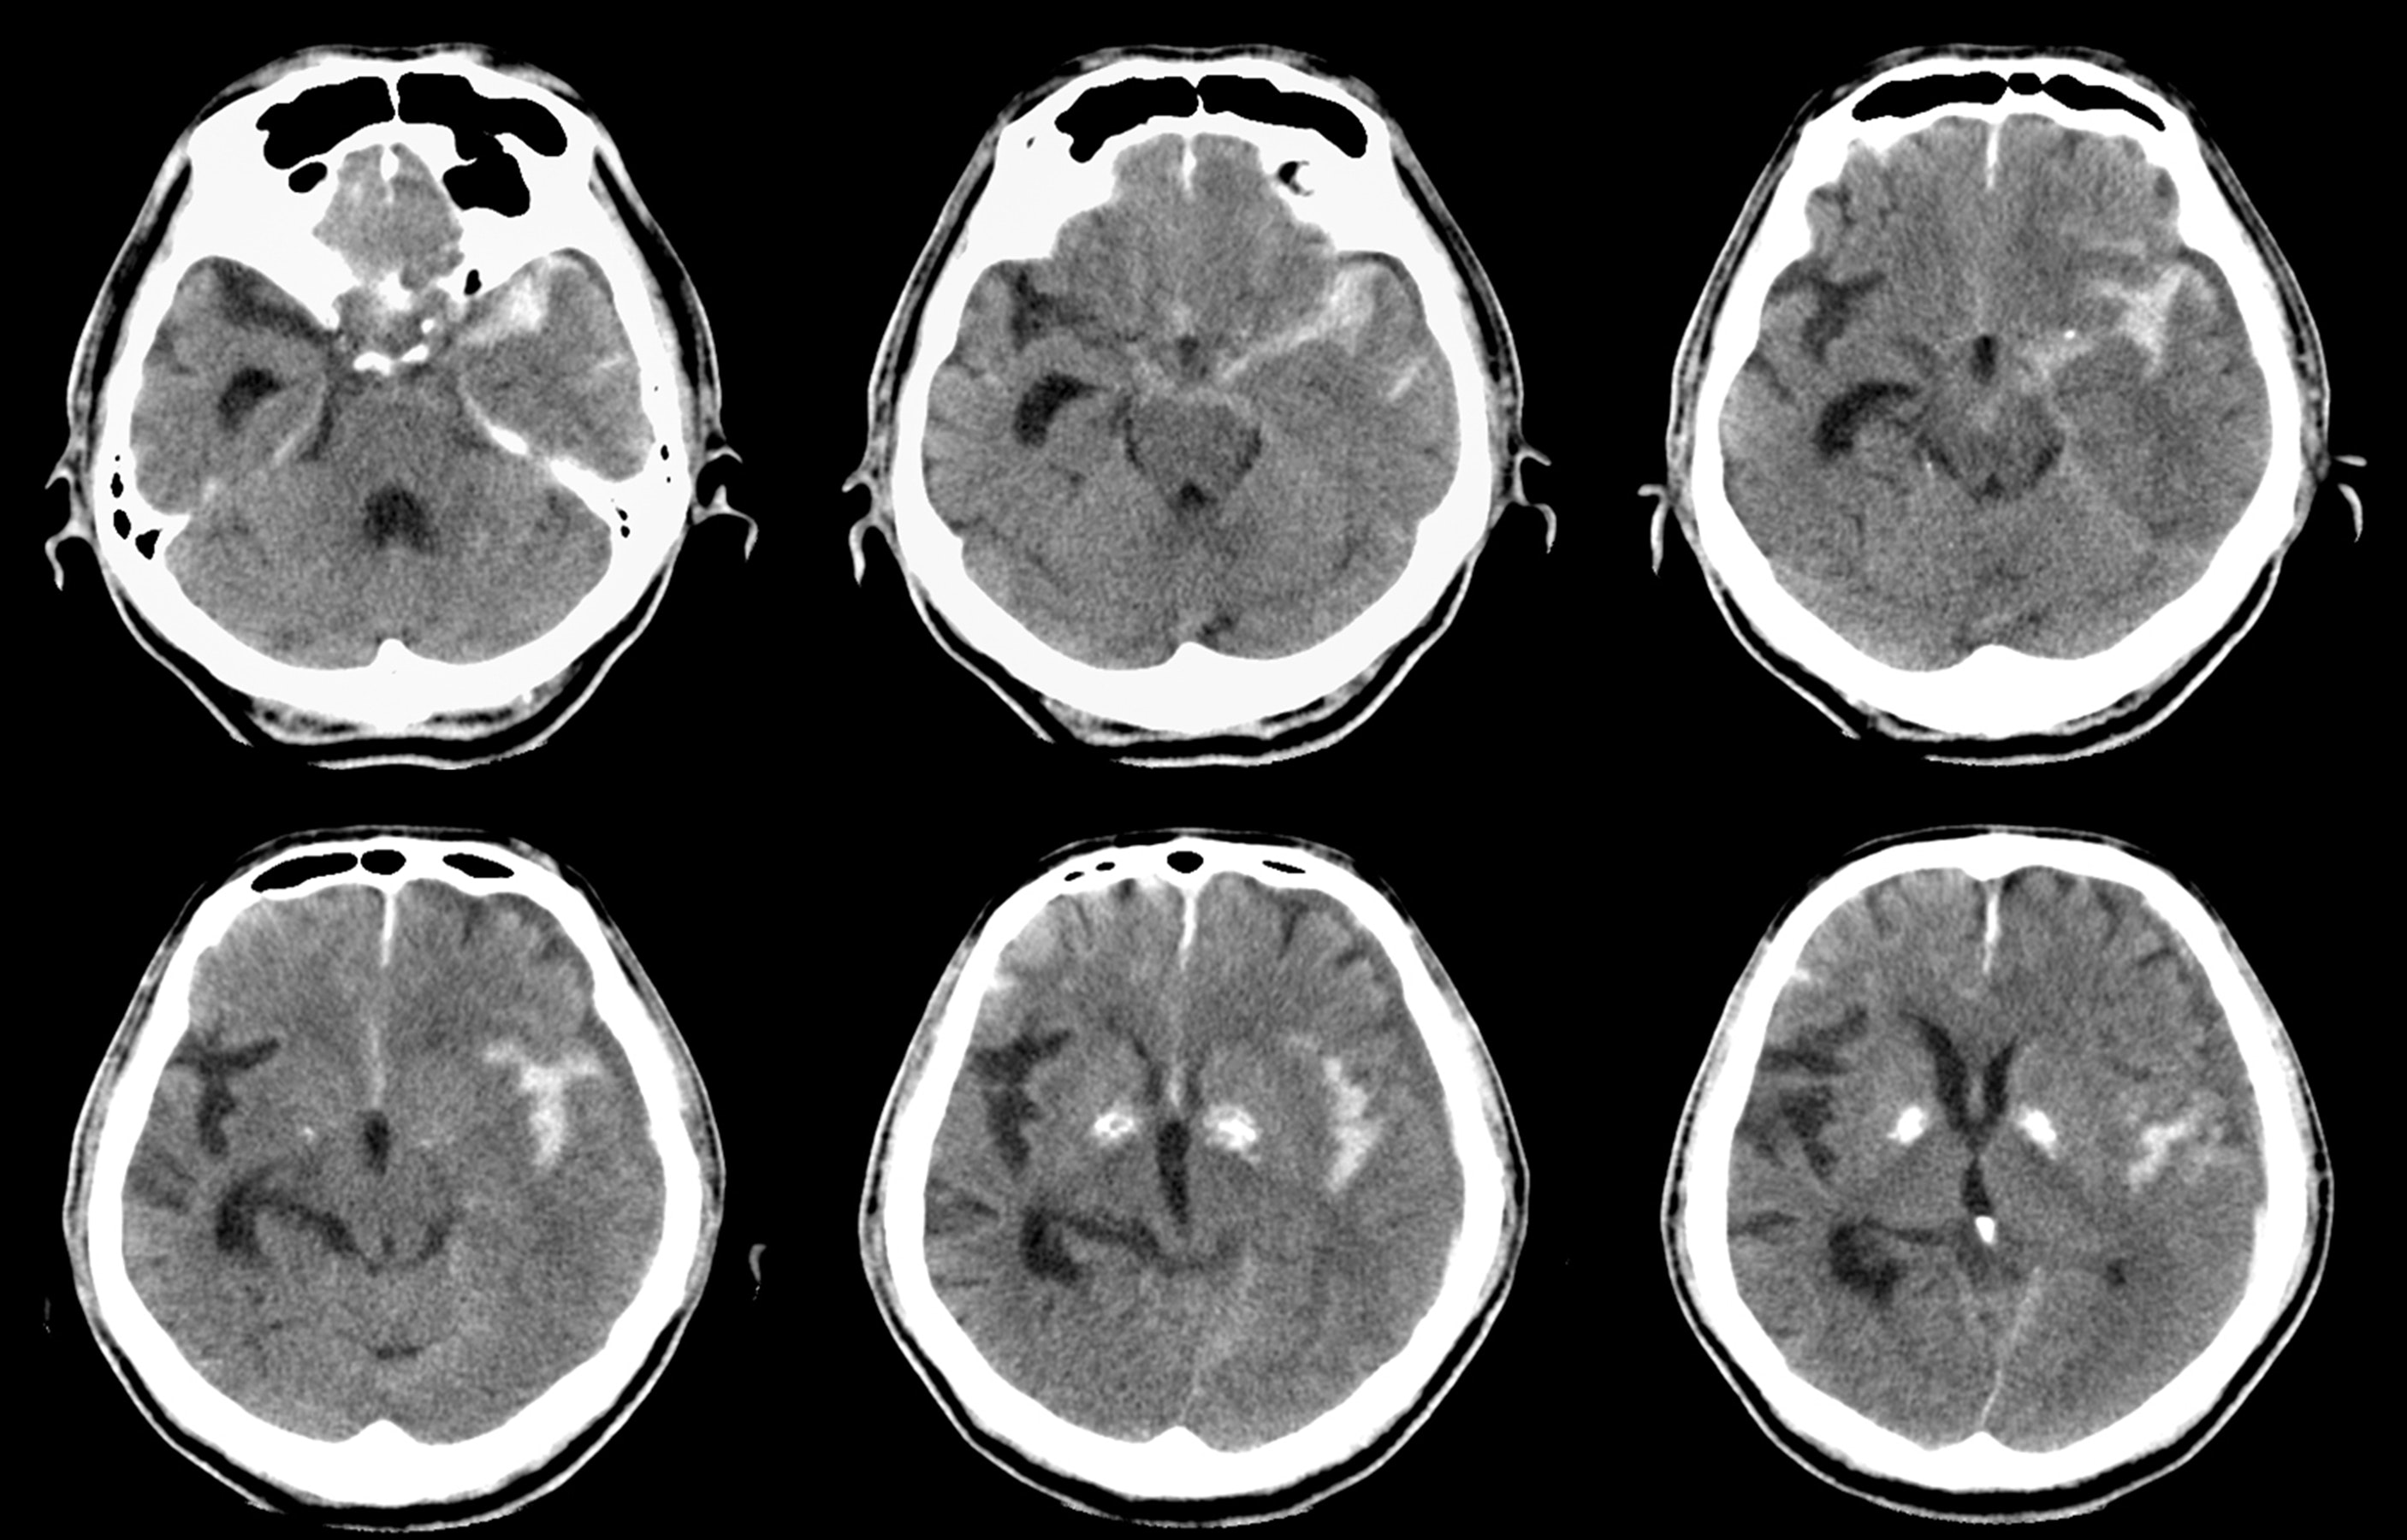 An image depicting a person suffering from Subarachnoid Hemorrhage symptoms